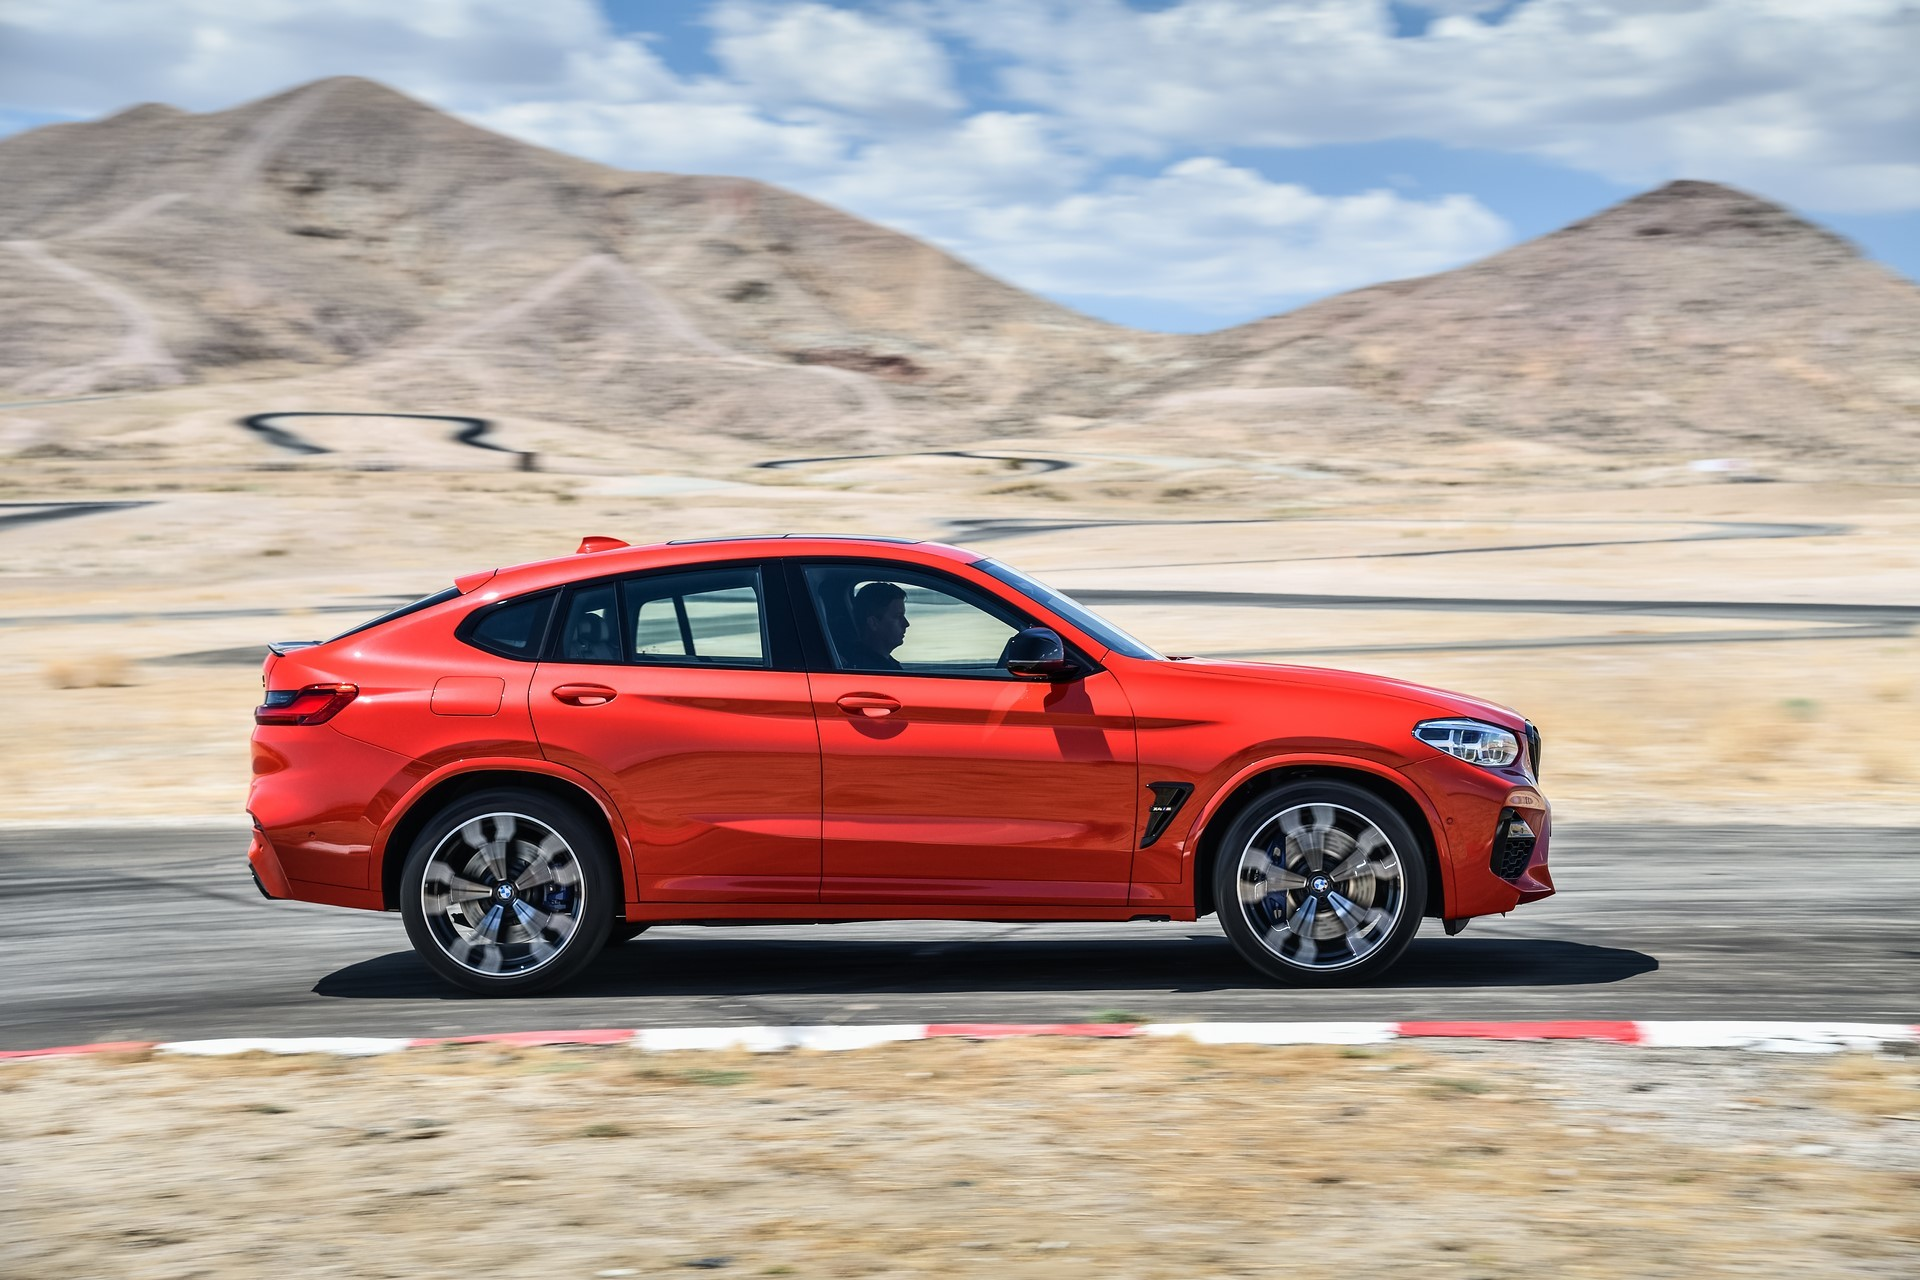 BMW X3 M and X4 M 2019 (79)